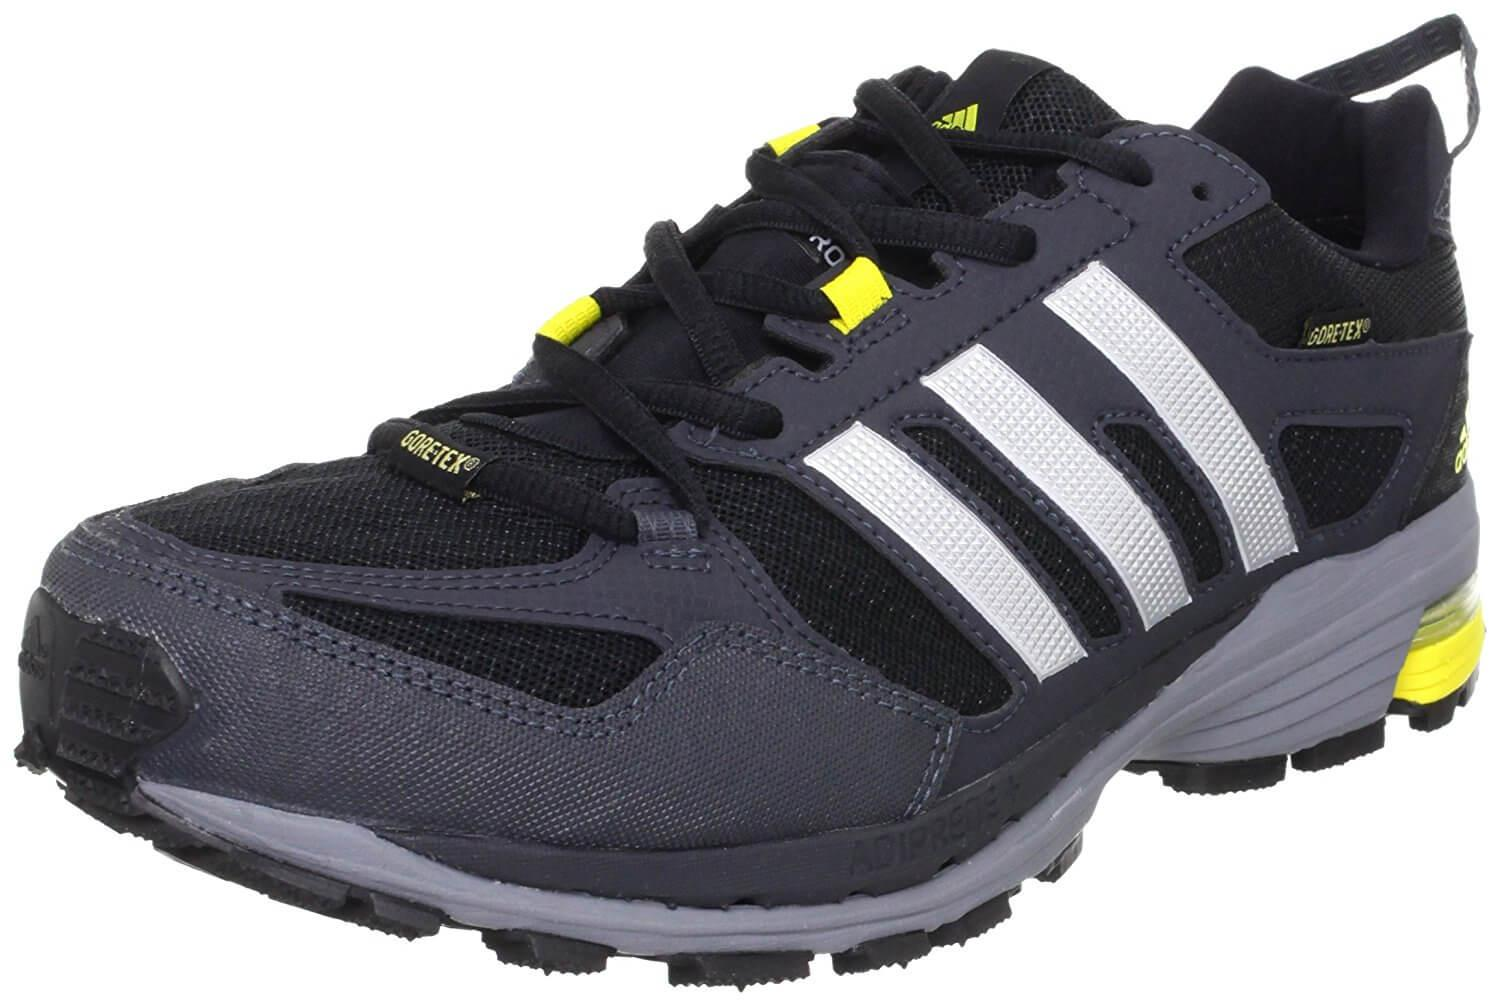 084c9292185c1 Adidas Supernova Riot 5 GTX - To Buy or Not in May 2019